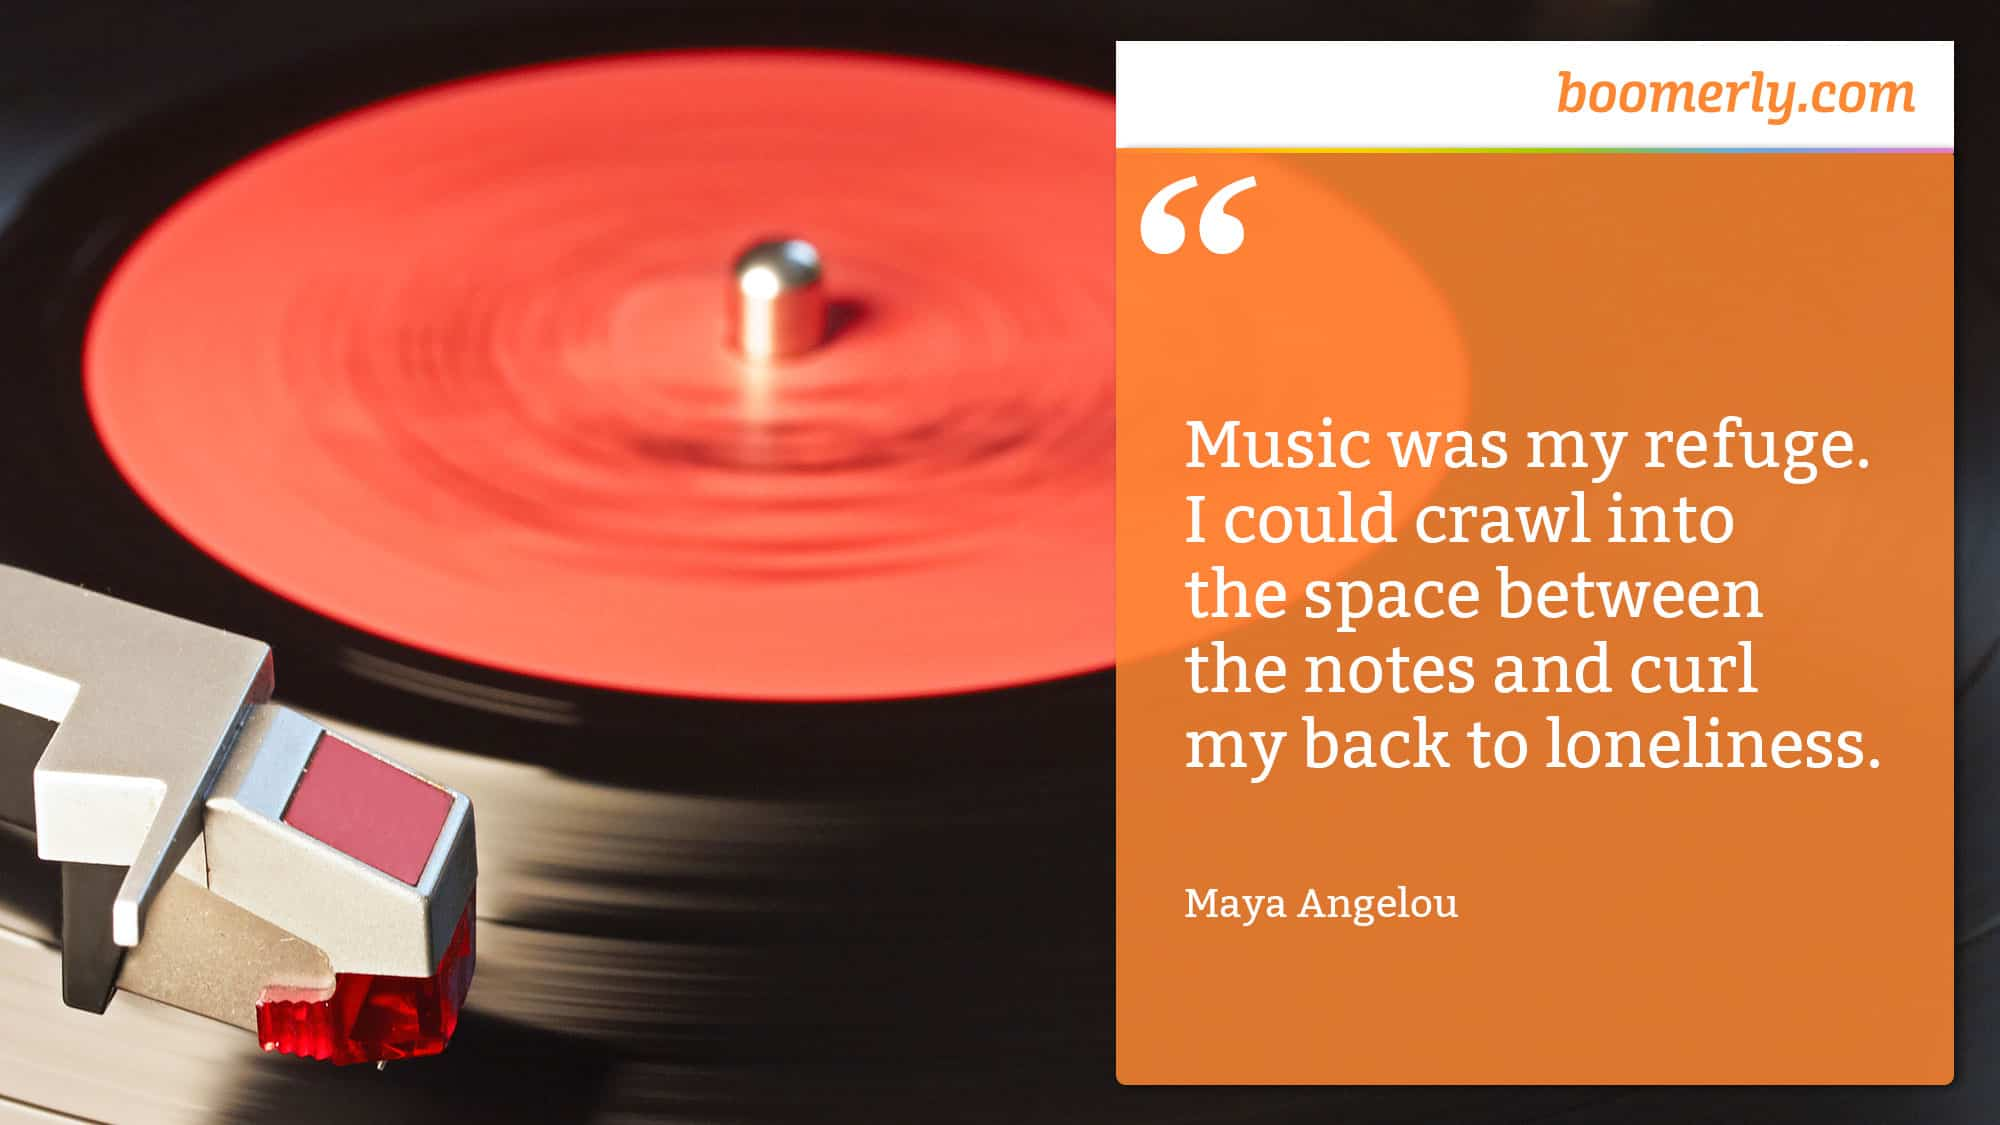 """How to Feel Less Lonely - """"Music was my refuge. I could crawl into the space between the notes and curl my back to loneliness."""" - Maya Angelou"""